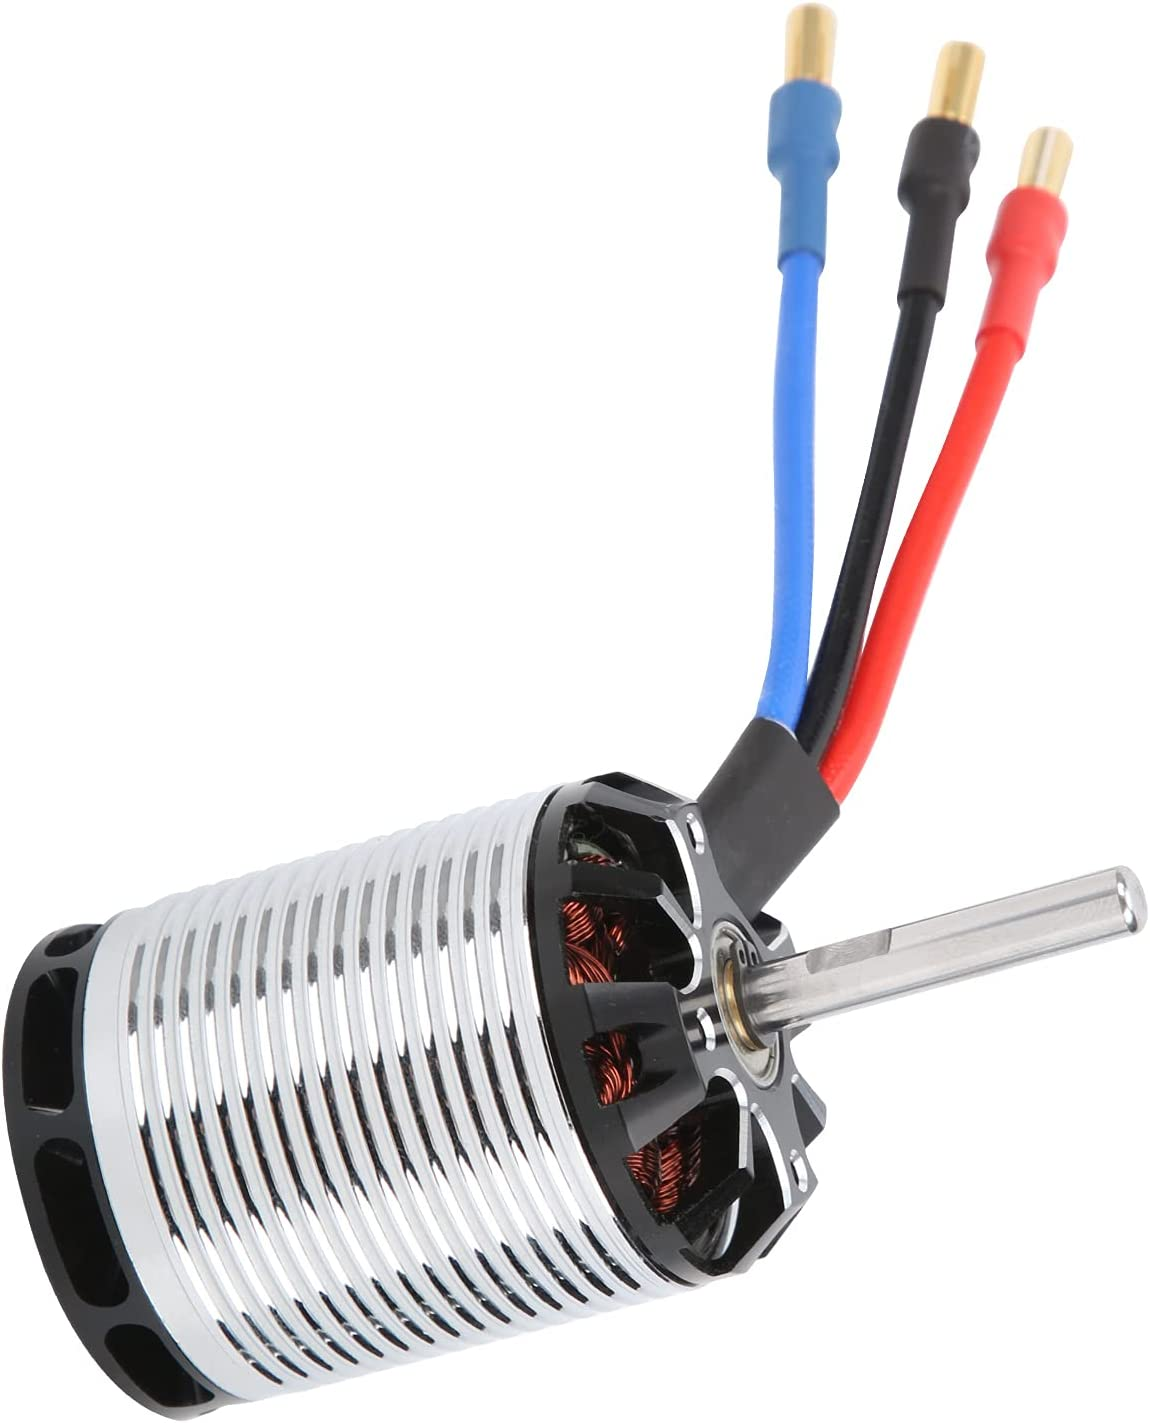 Brushless Motor Helicopter Light Charlotte Mall Simple with and Compact Max 77% OFF